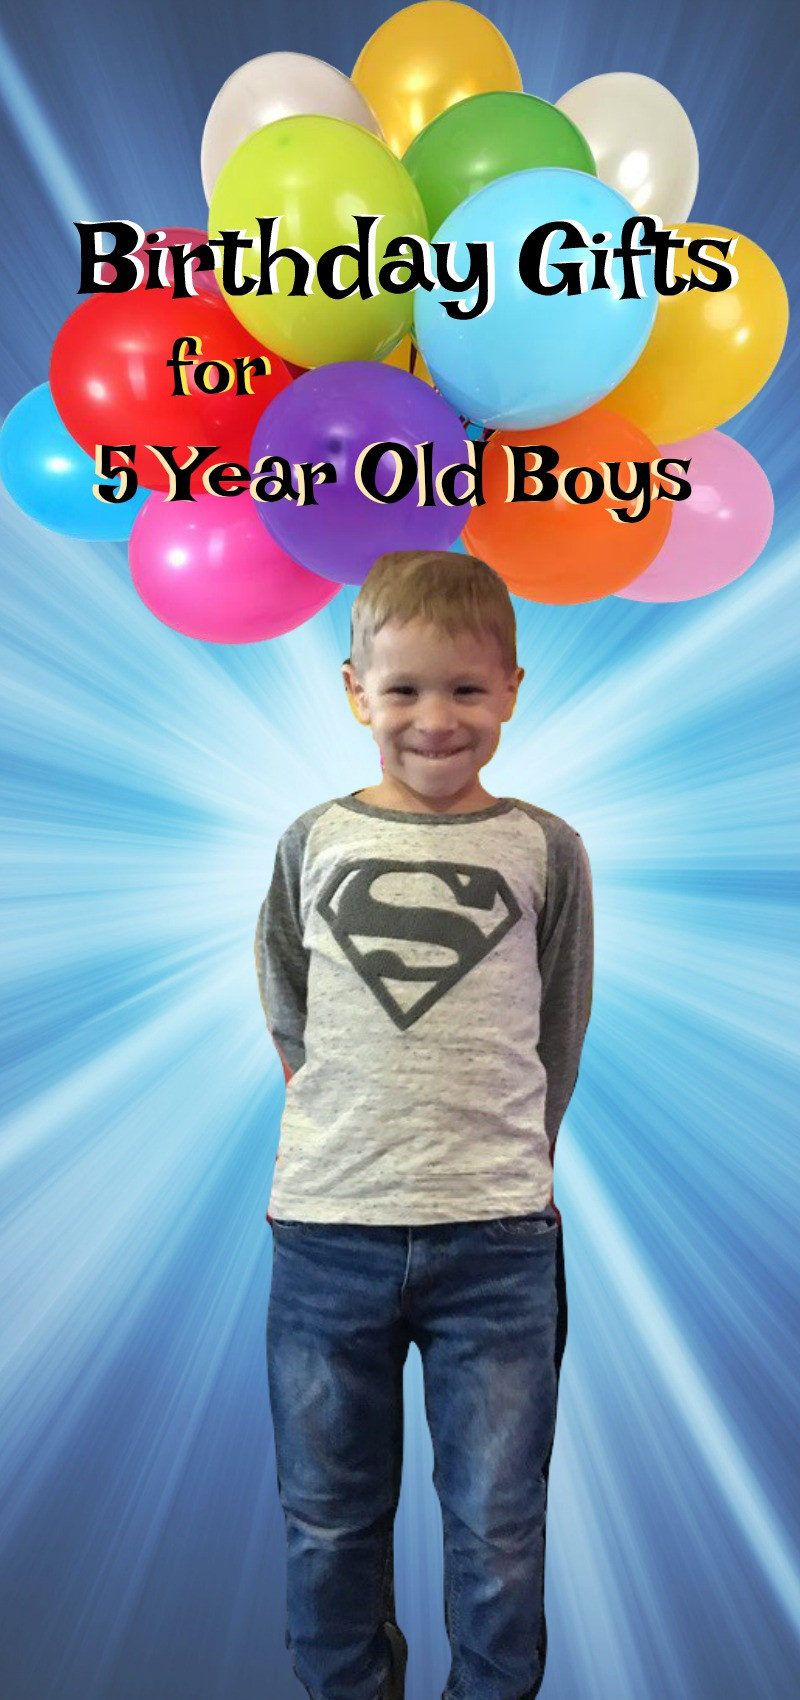 5 Year Old Boy Birthday Gift  What Are The Best Toys for 5 Year Old Boys 25 Great